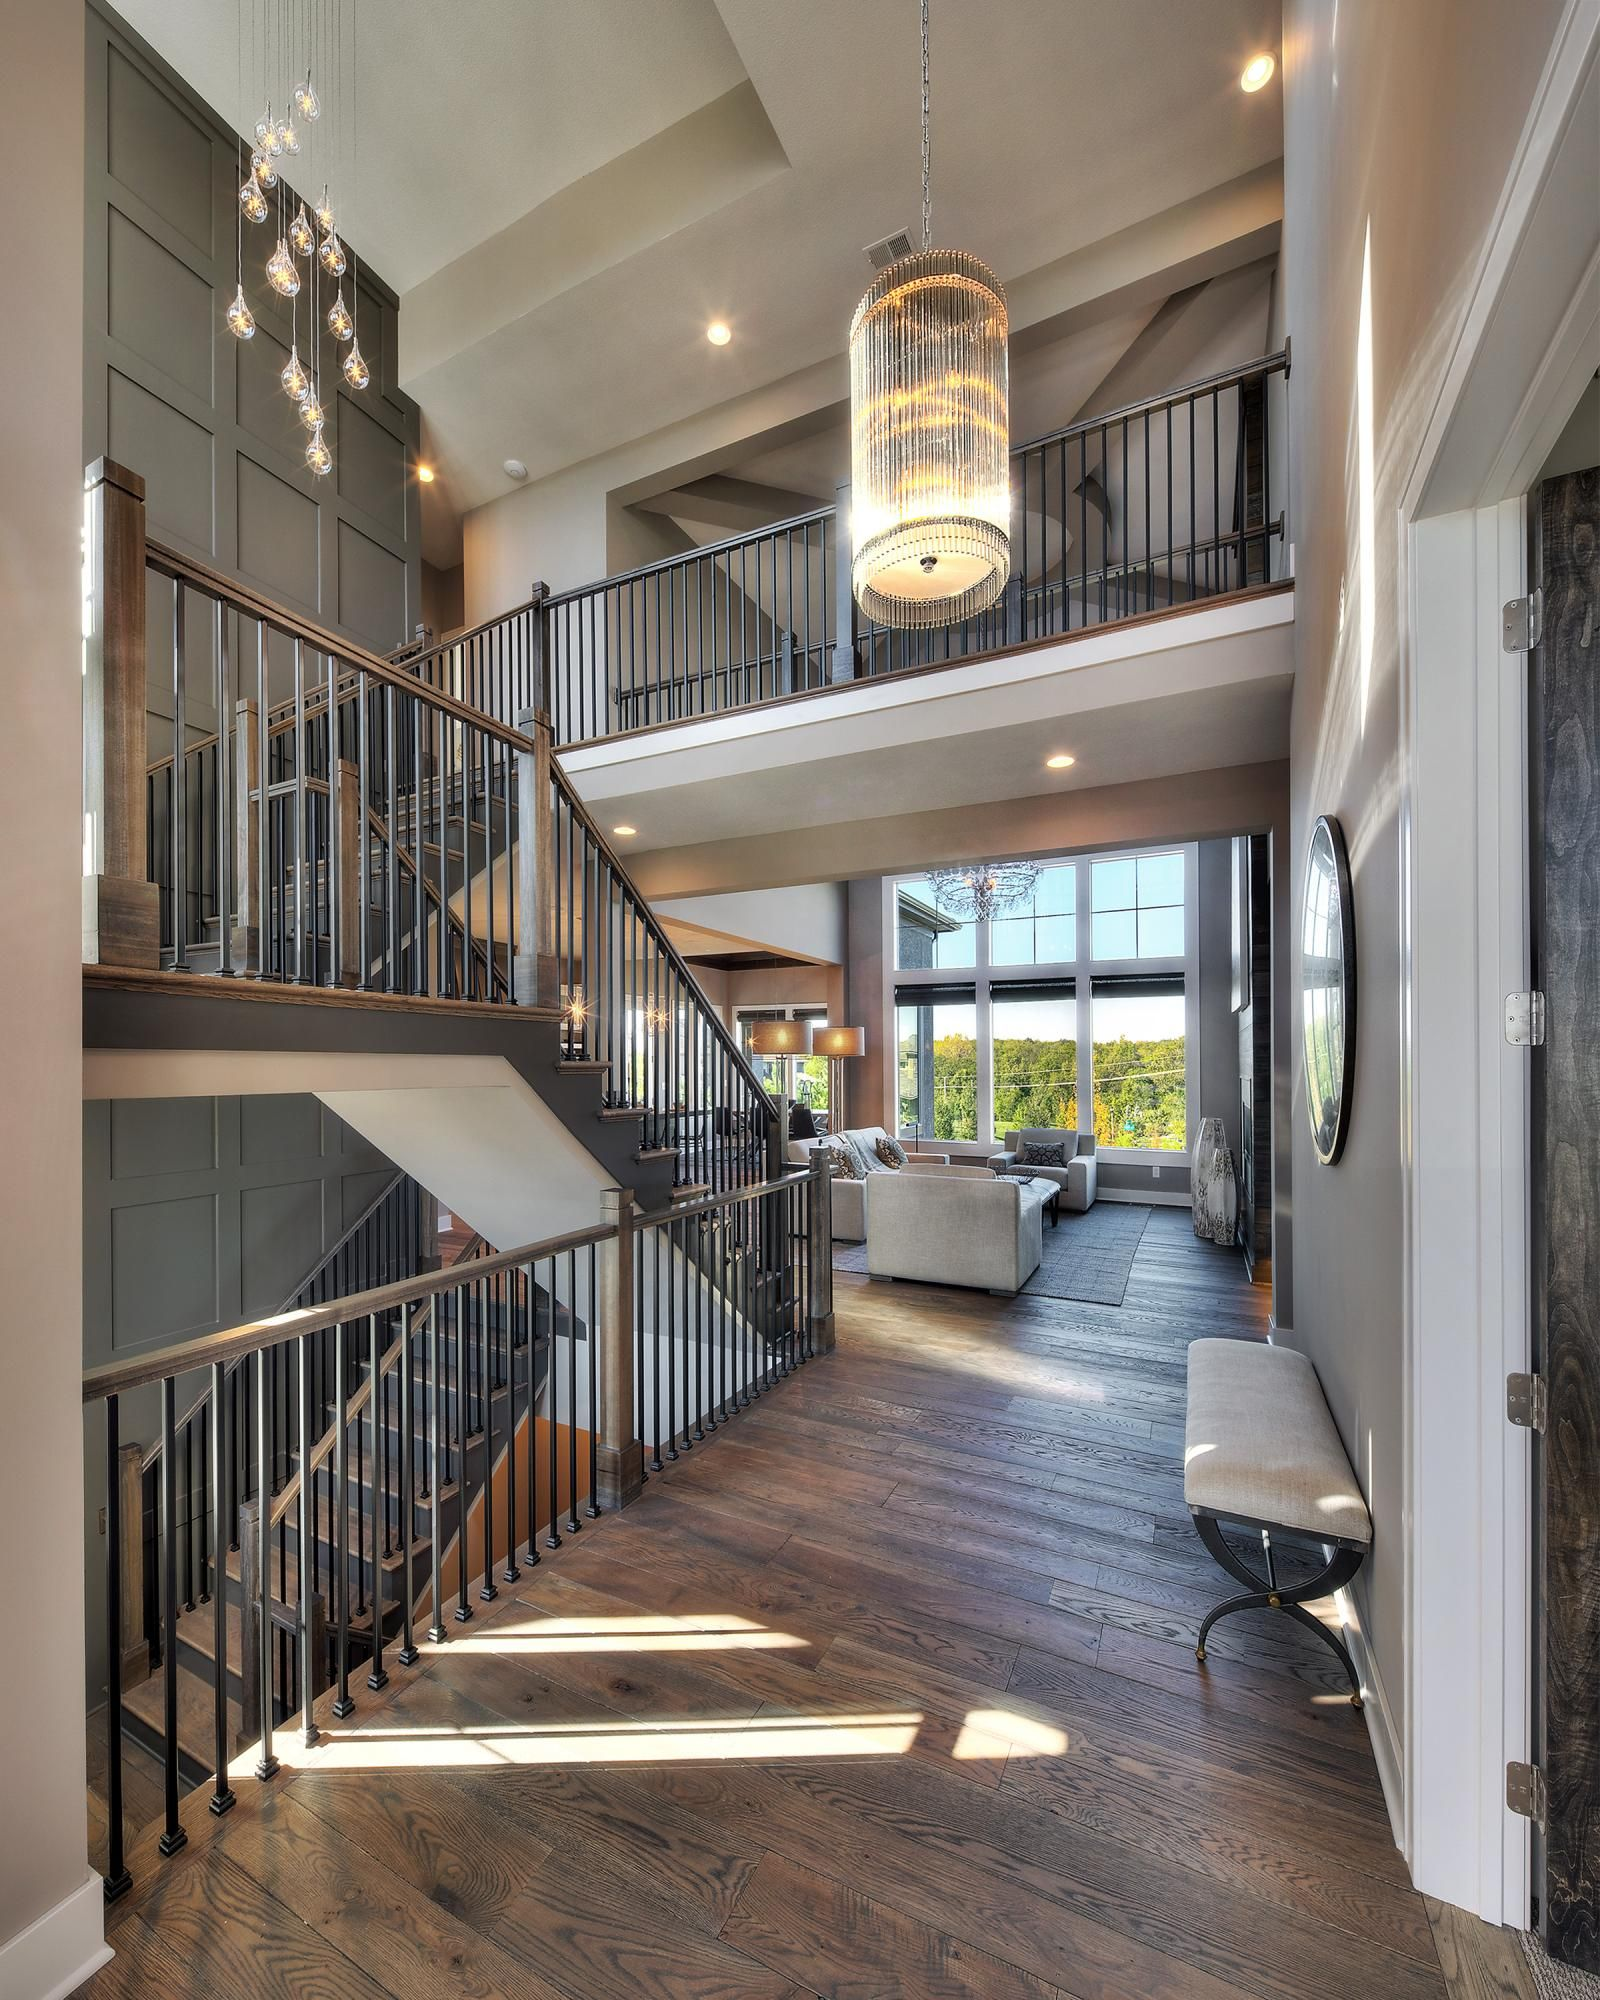 Custom Home Interiors: Entry & Staircases Photo Gallery